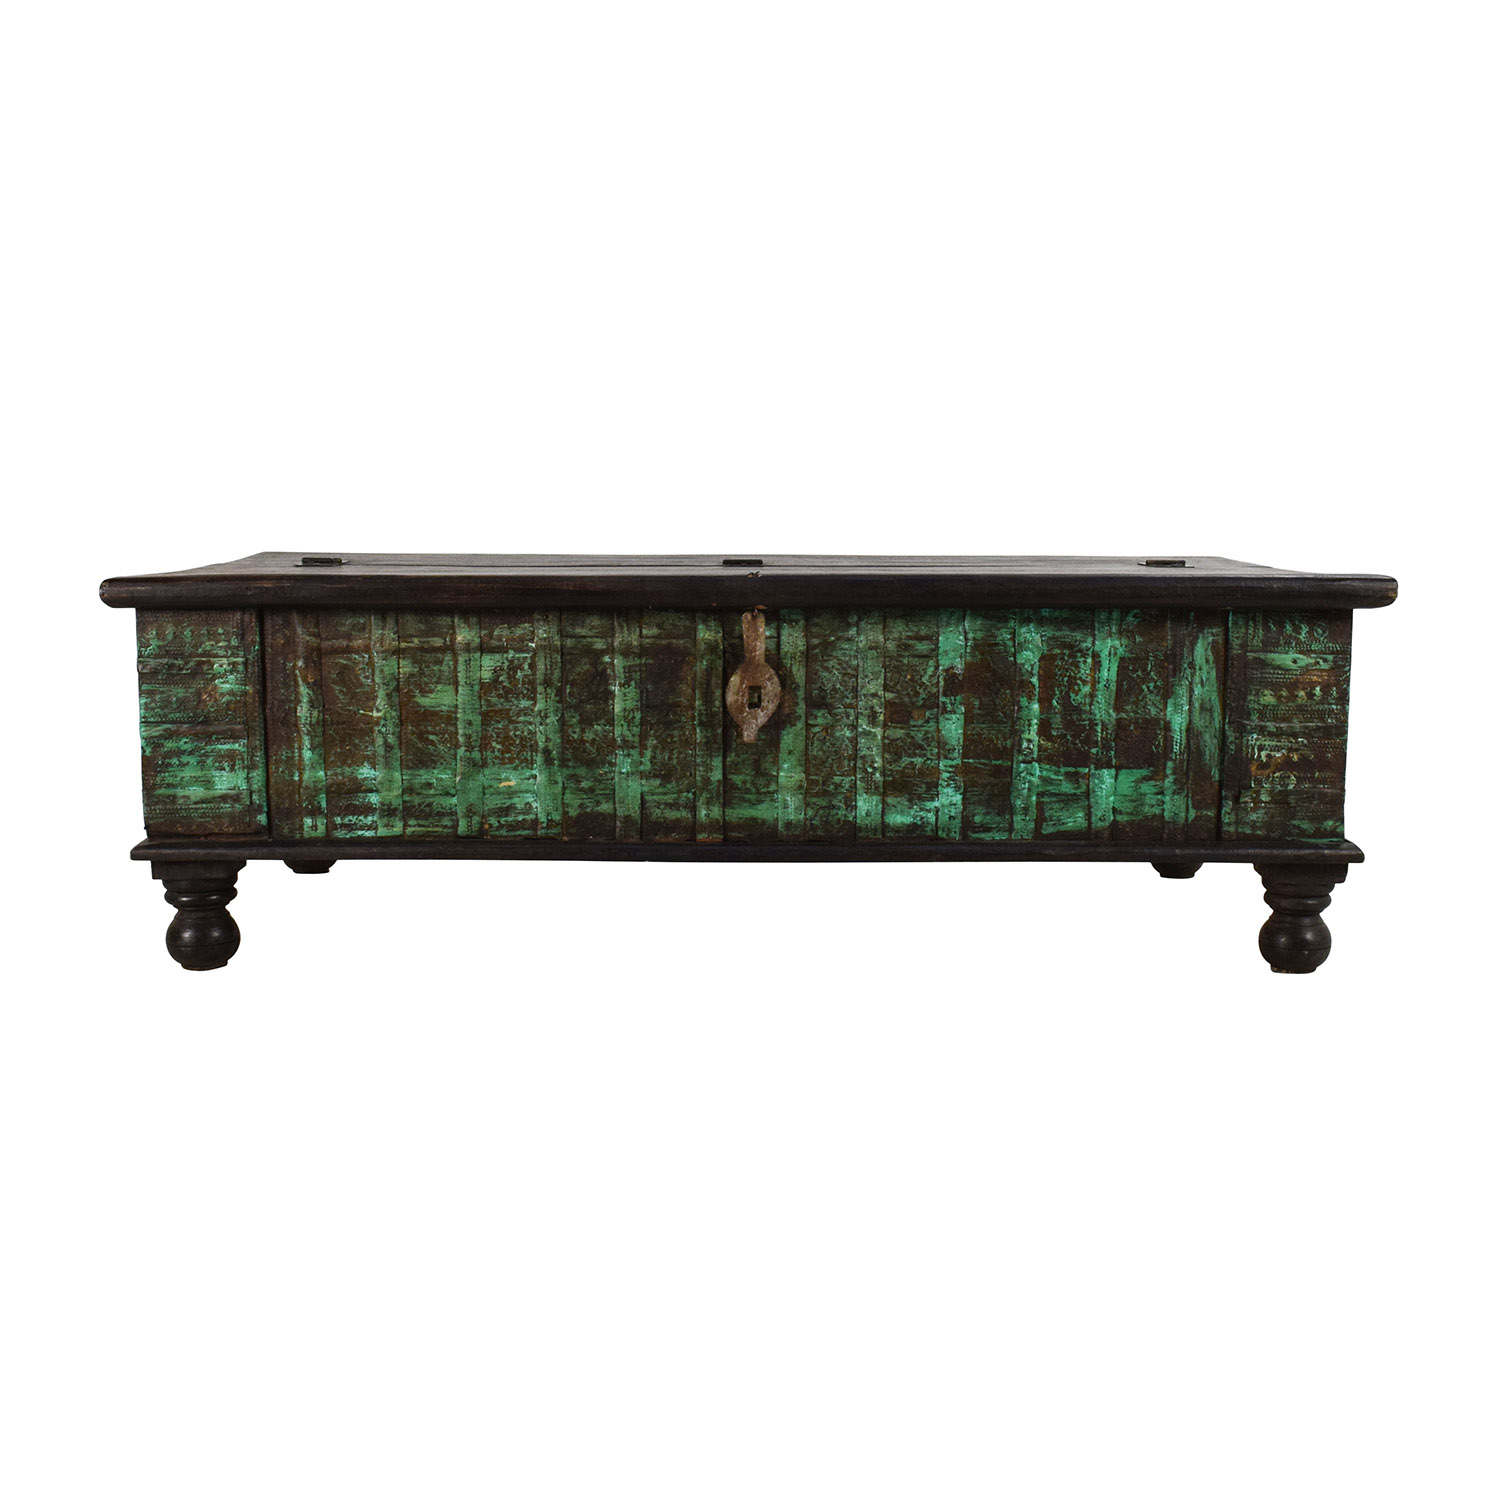 Nadeau Nadeau Distressed Coffee Table with Storage second hand